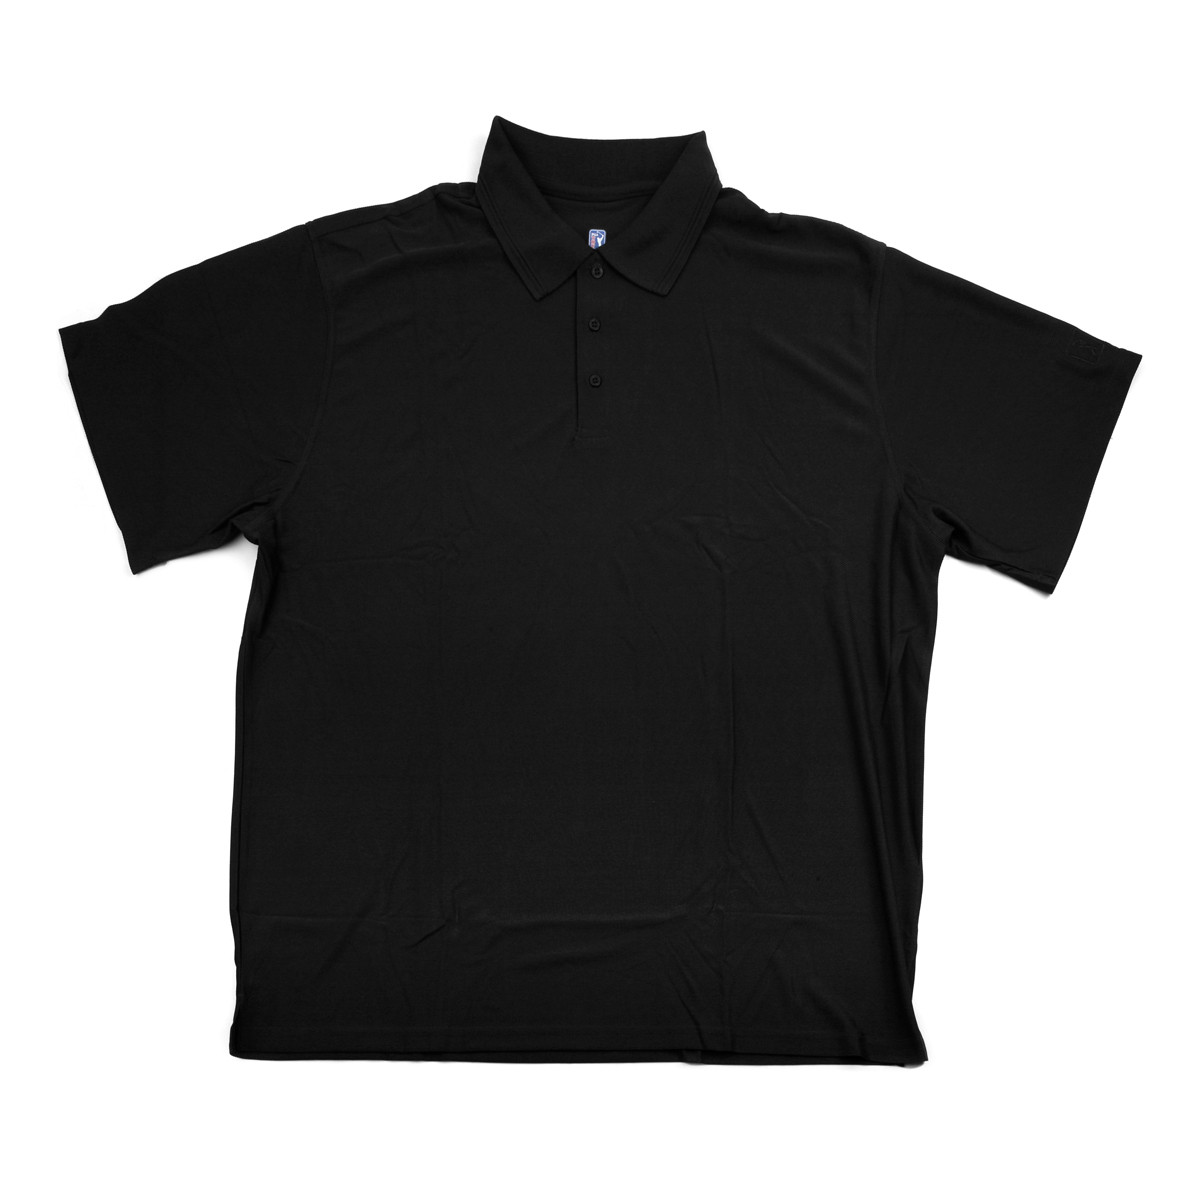 PGA TOUR Men's Polo Shirt - Black Solid - Small